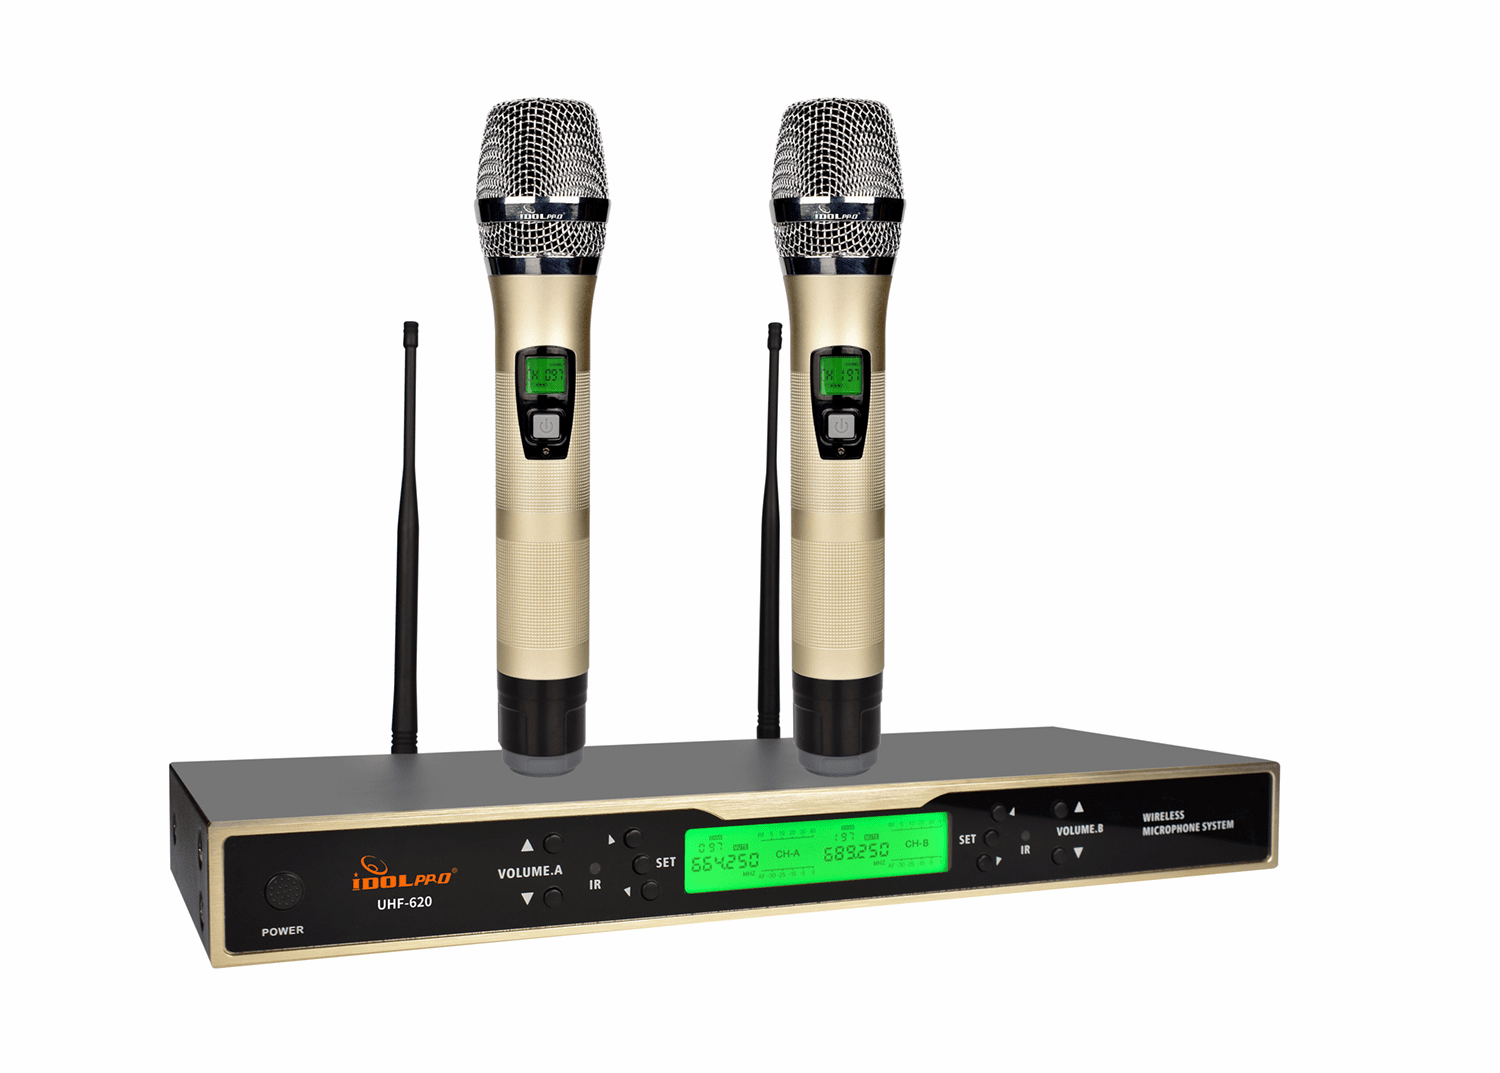 IDOLPRO UHF-620 Dual Channel Wireless Microphones With New Digital Technology